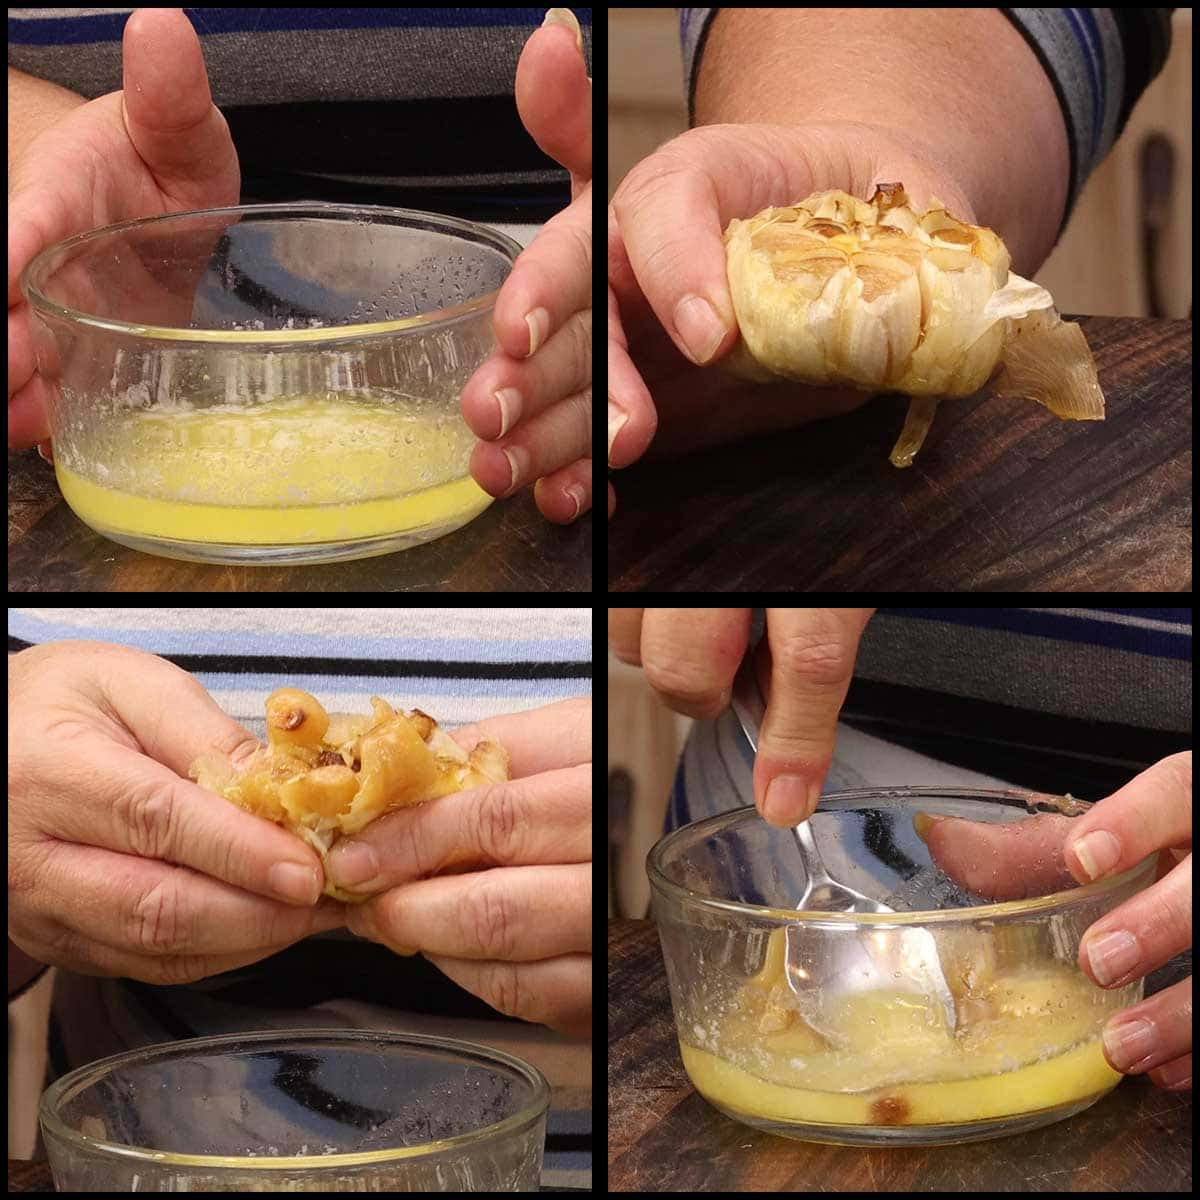 squeezing the roasted garlic into melted butter and making a paste